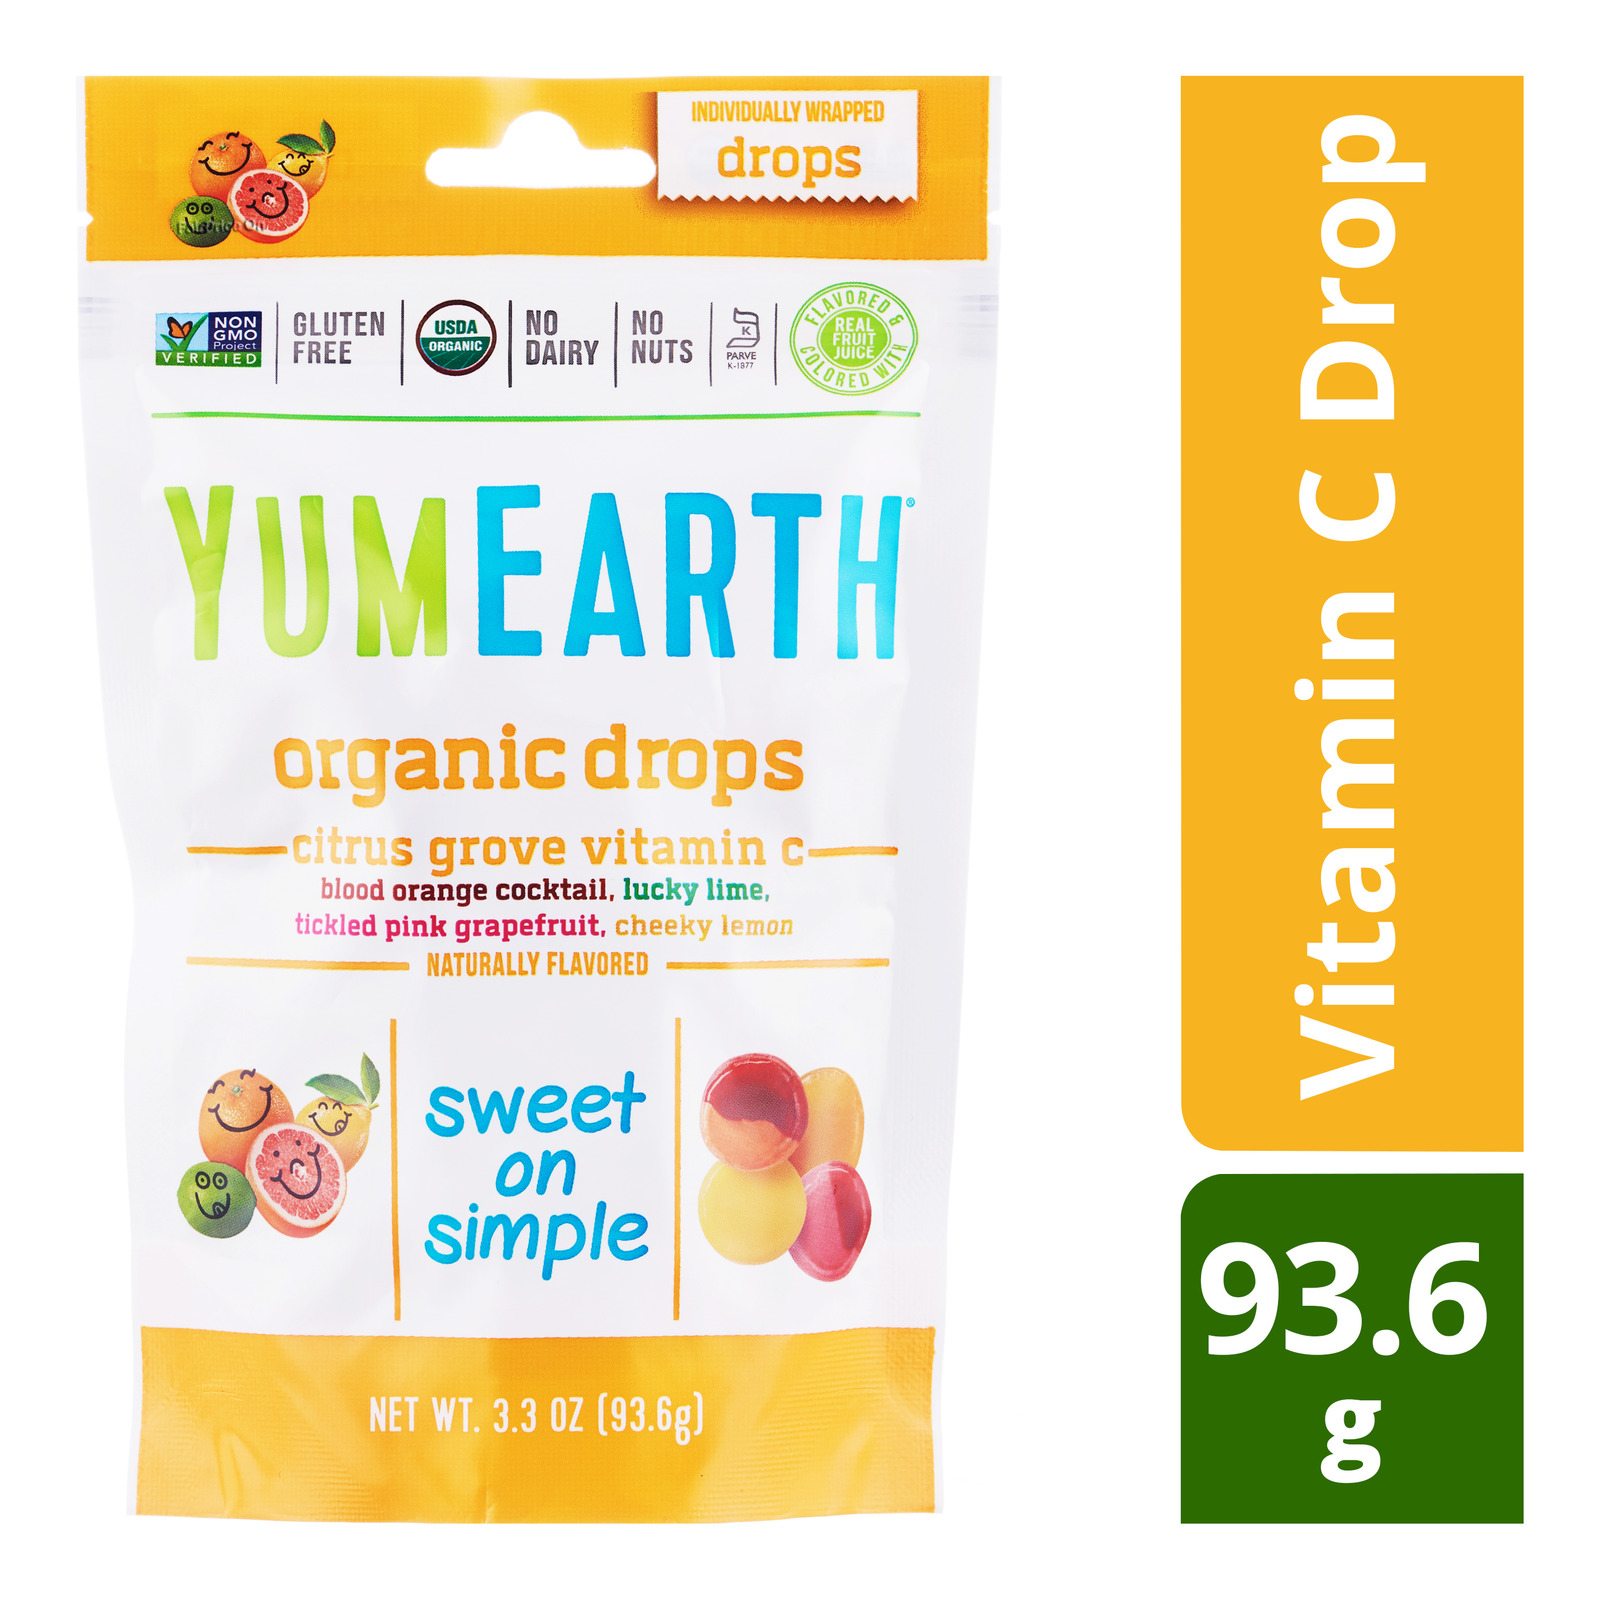 Yum Earth Organics Hard Candies - Vitamin C Drop